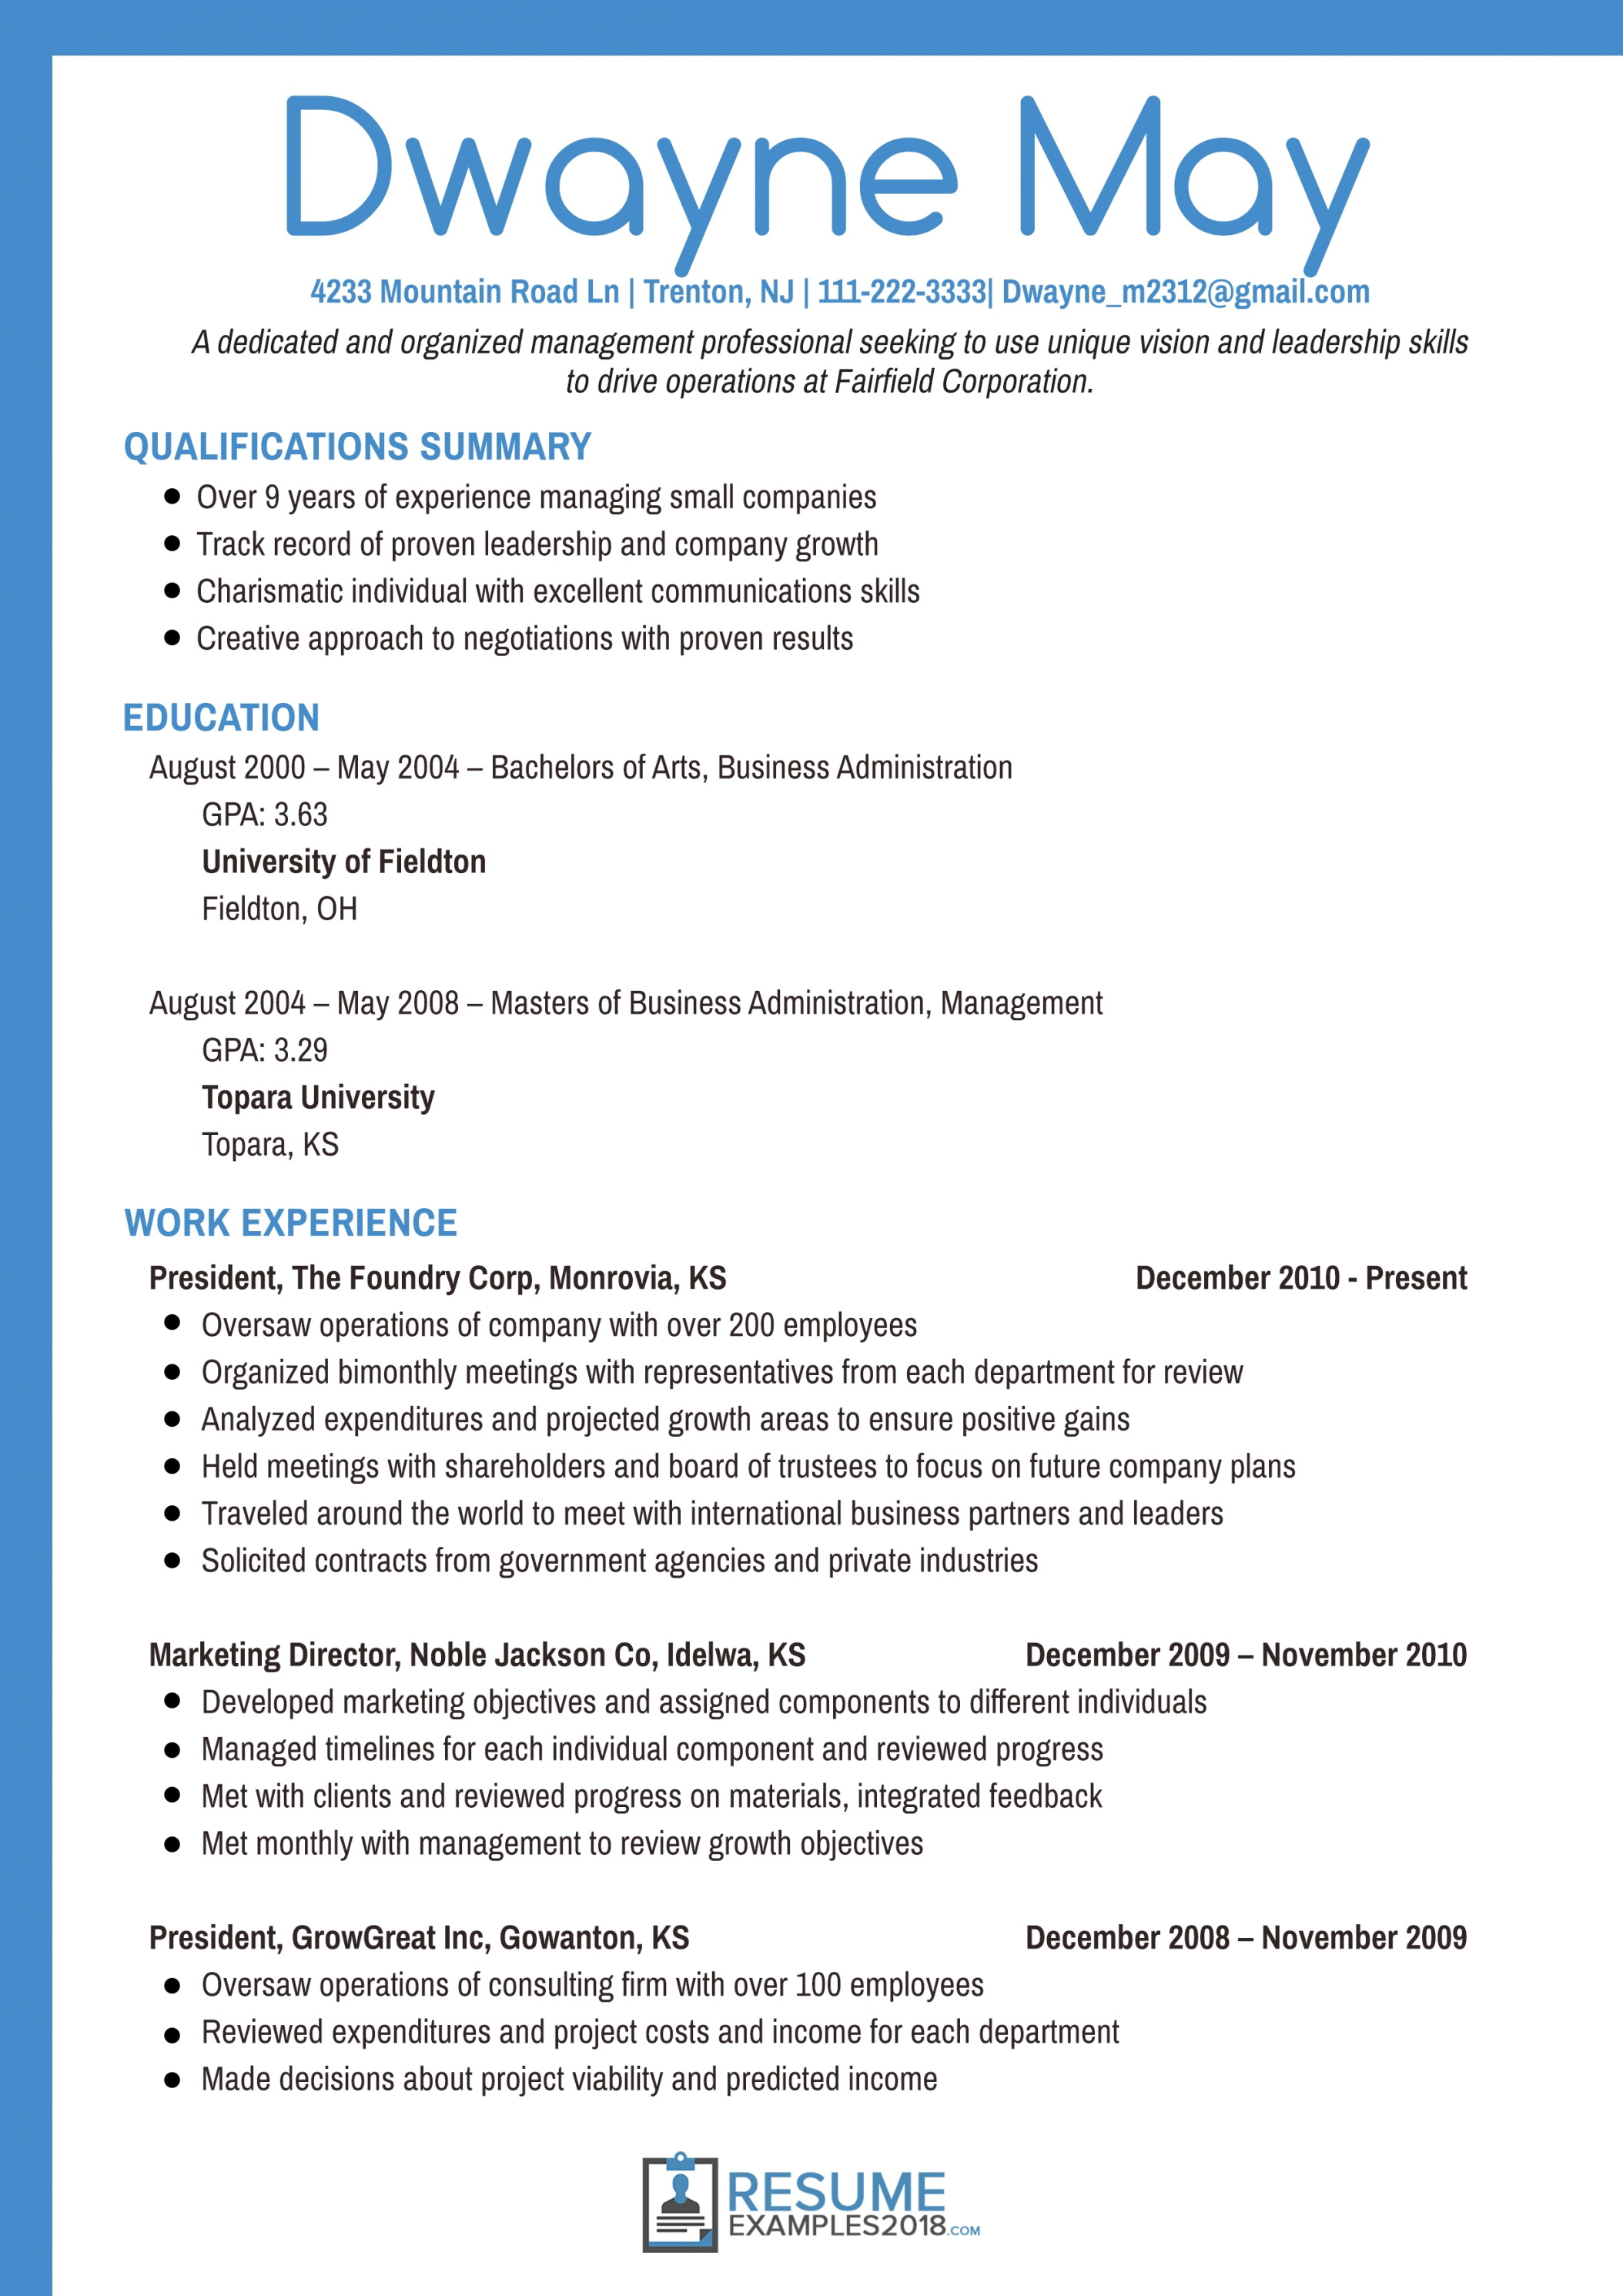 Professional Resume Samples 2018 | Fieltro Intended For Resume E